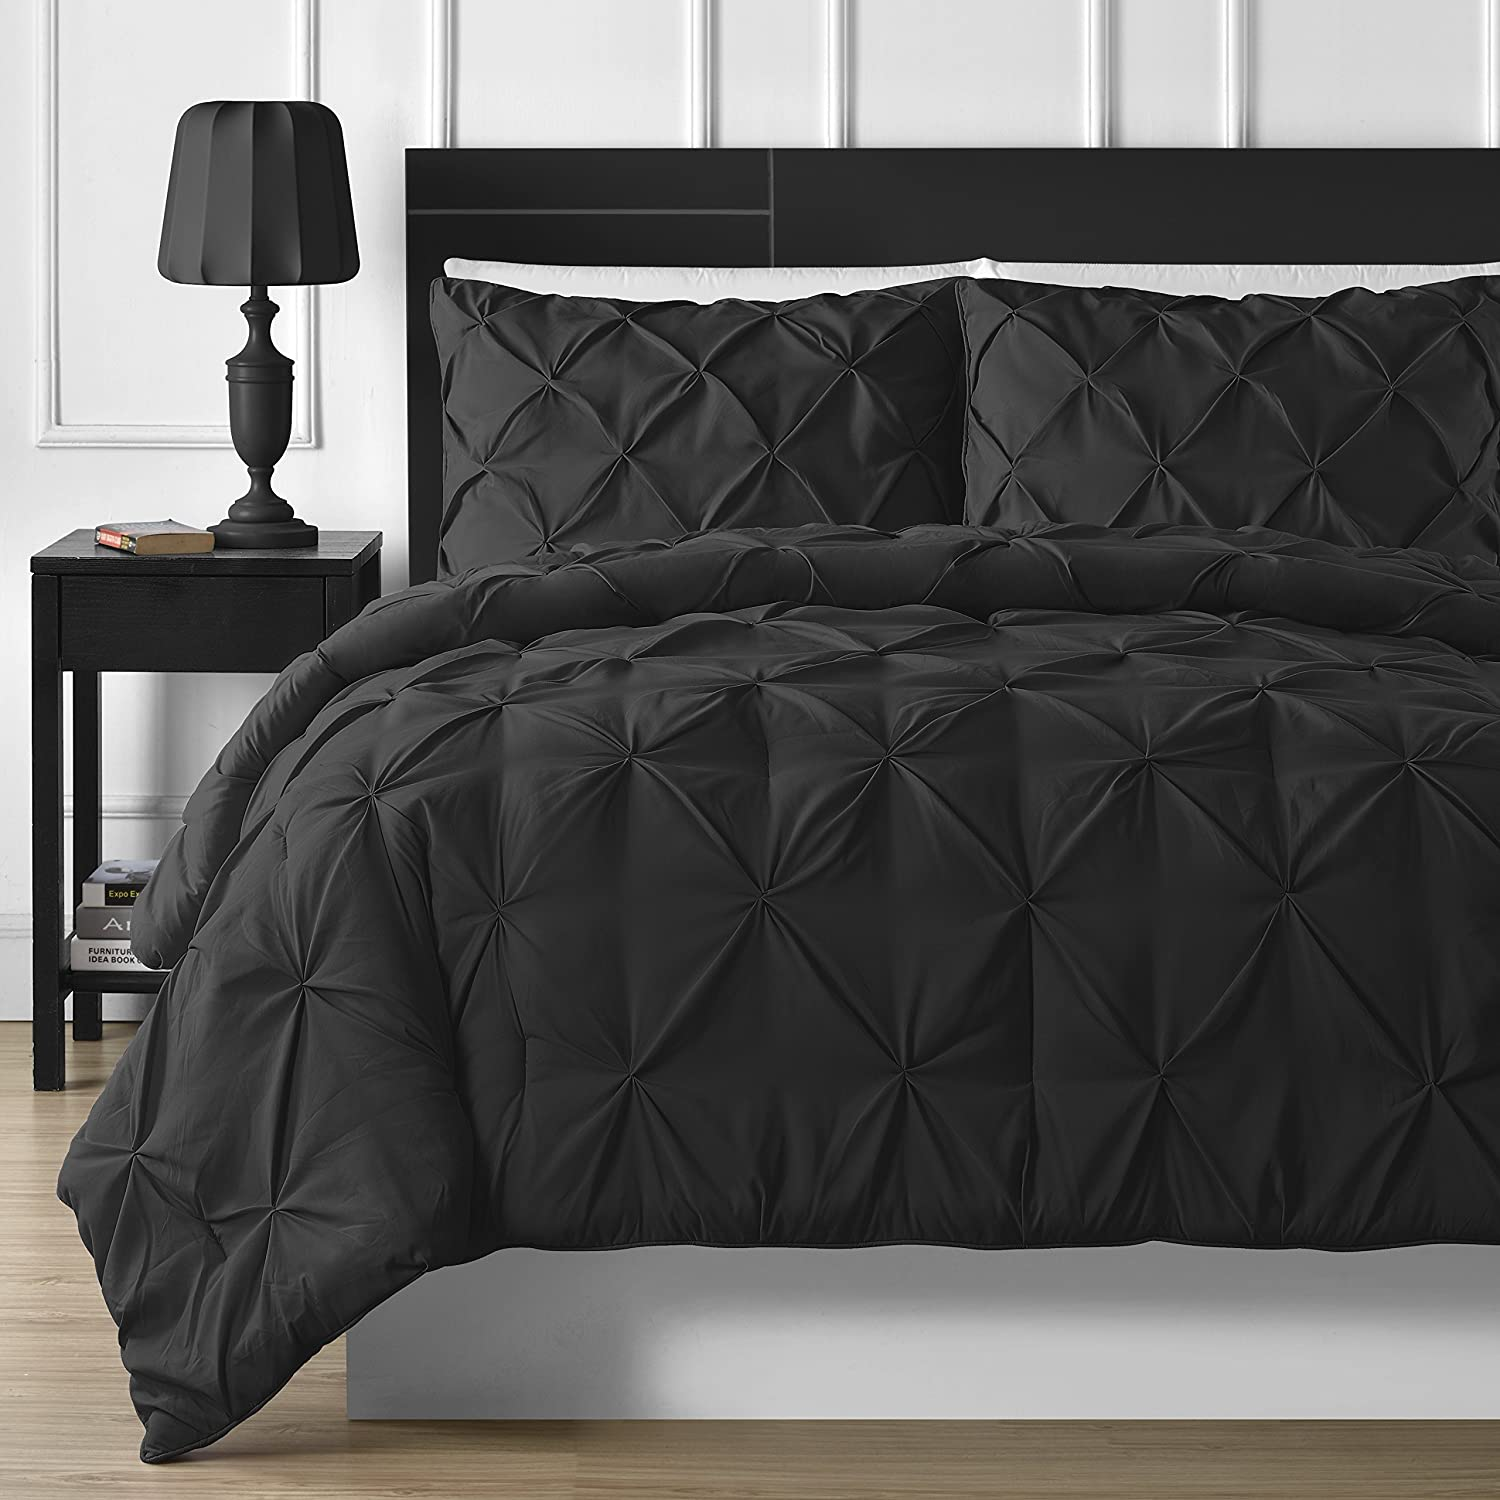 Bed in a Bag 7-PC Comfy Bedding Durable Stitching Pinch Pleat Comforter and Sheet Set King, Black